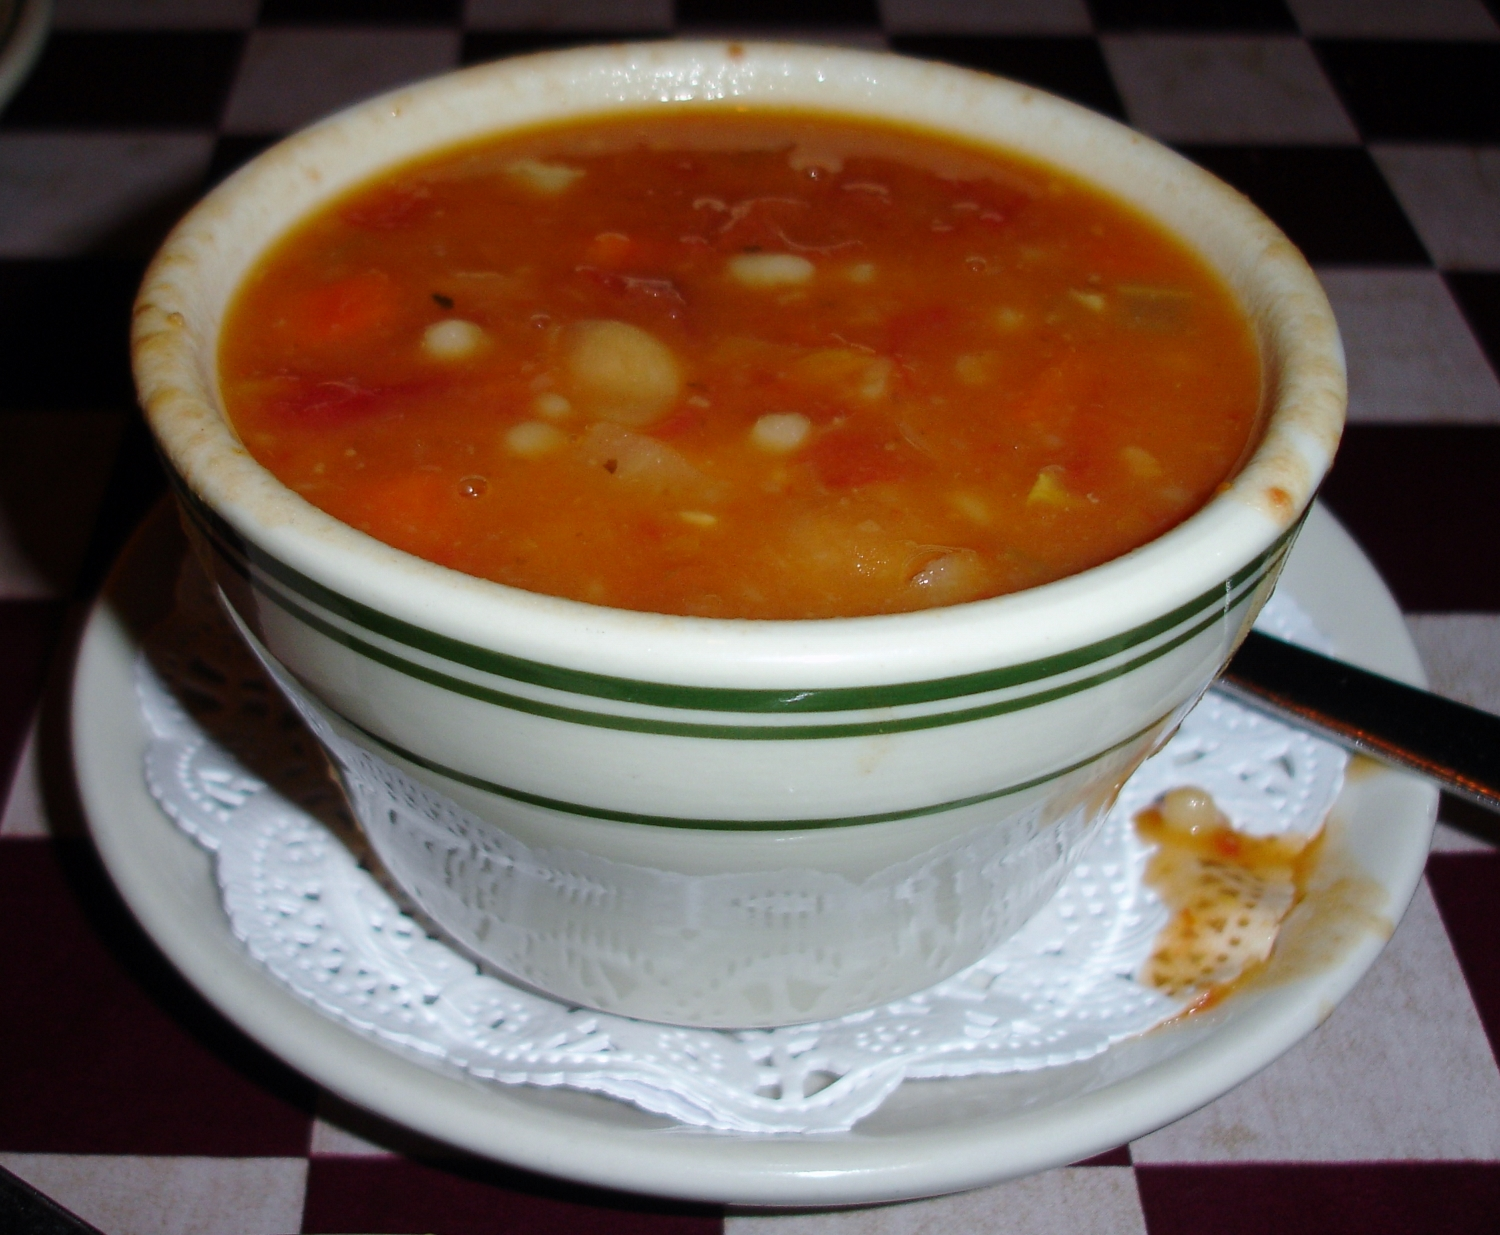 A cup of pasta e fagioli, here named pasta 'tre' fagioli because they use three kinds of beans and three kinds of pasta. Be sure to top your serving with grated cheese.